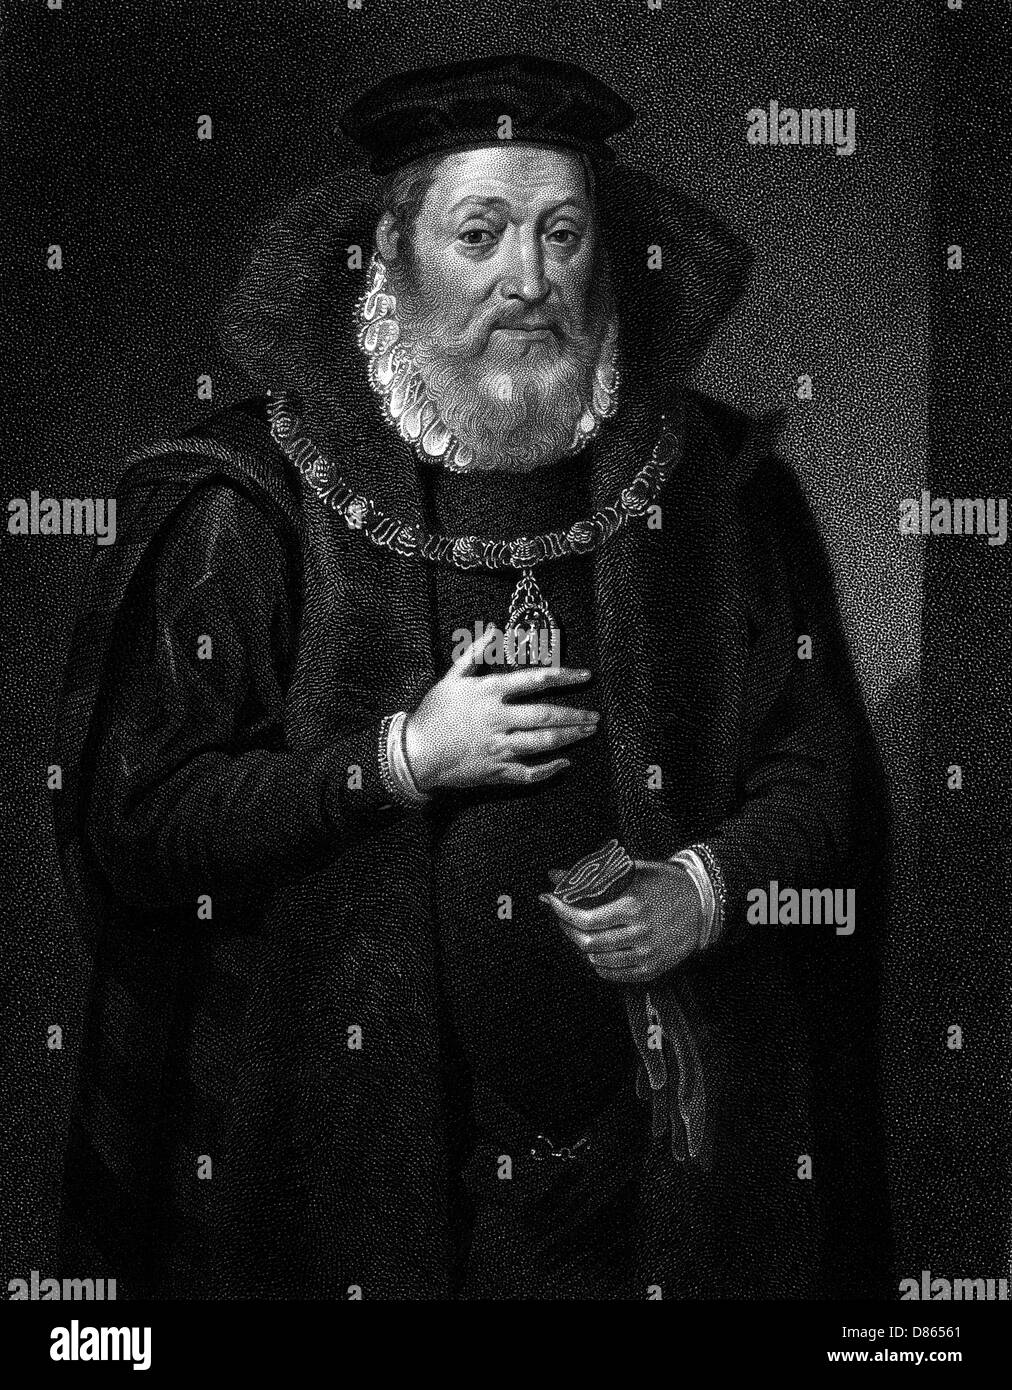 James Hamilton  2nd Earl Of Arran - Stock Image